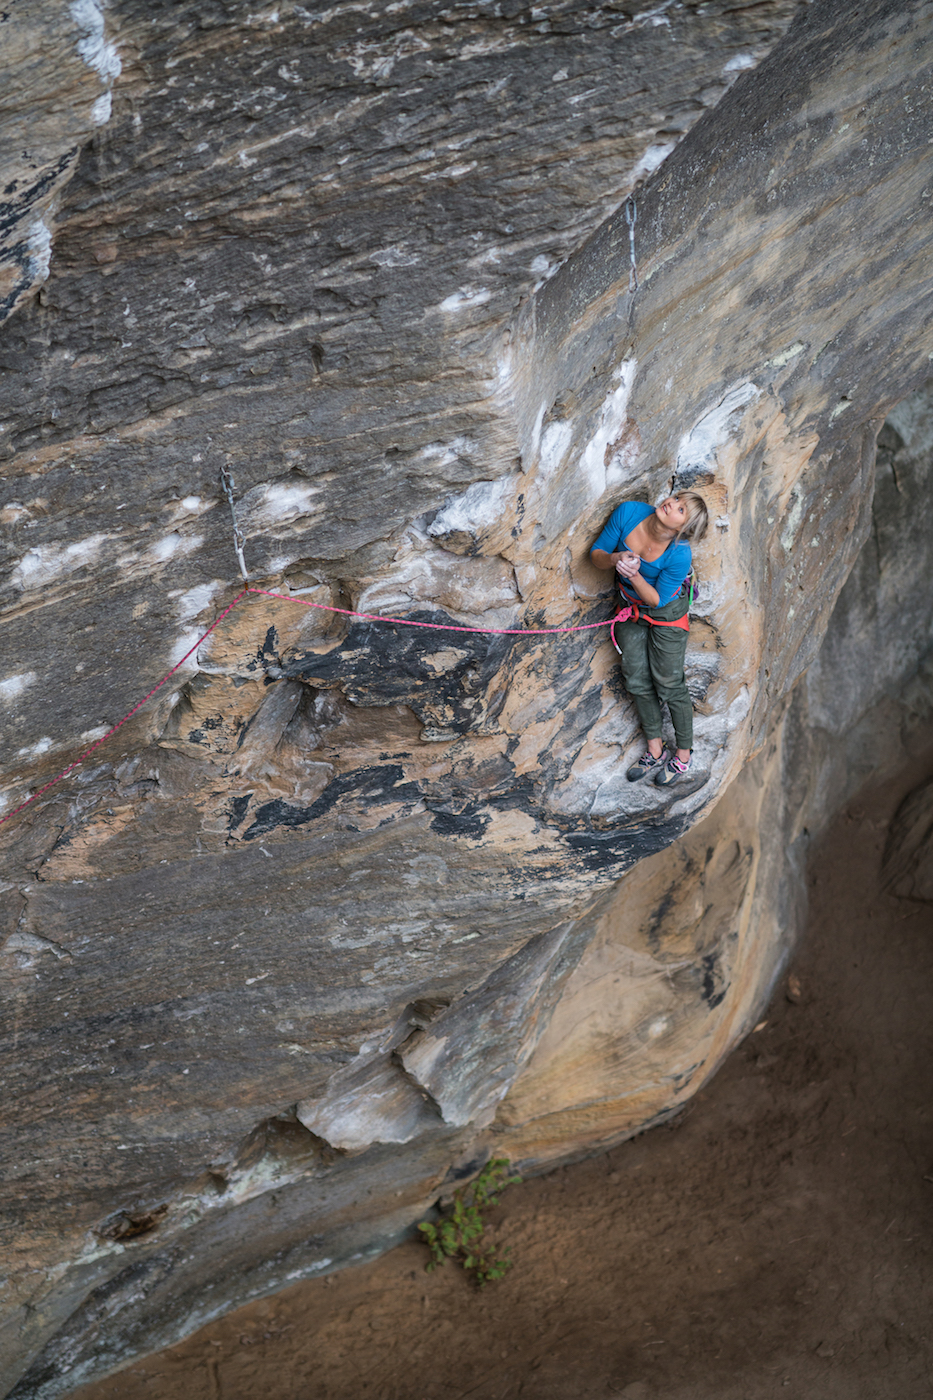 Anna warming her hands on a route at Red River Gorge. Photo: Matty Hong.